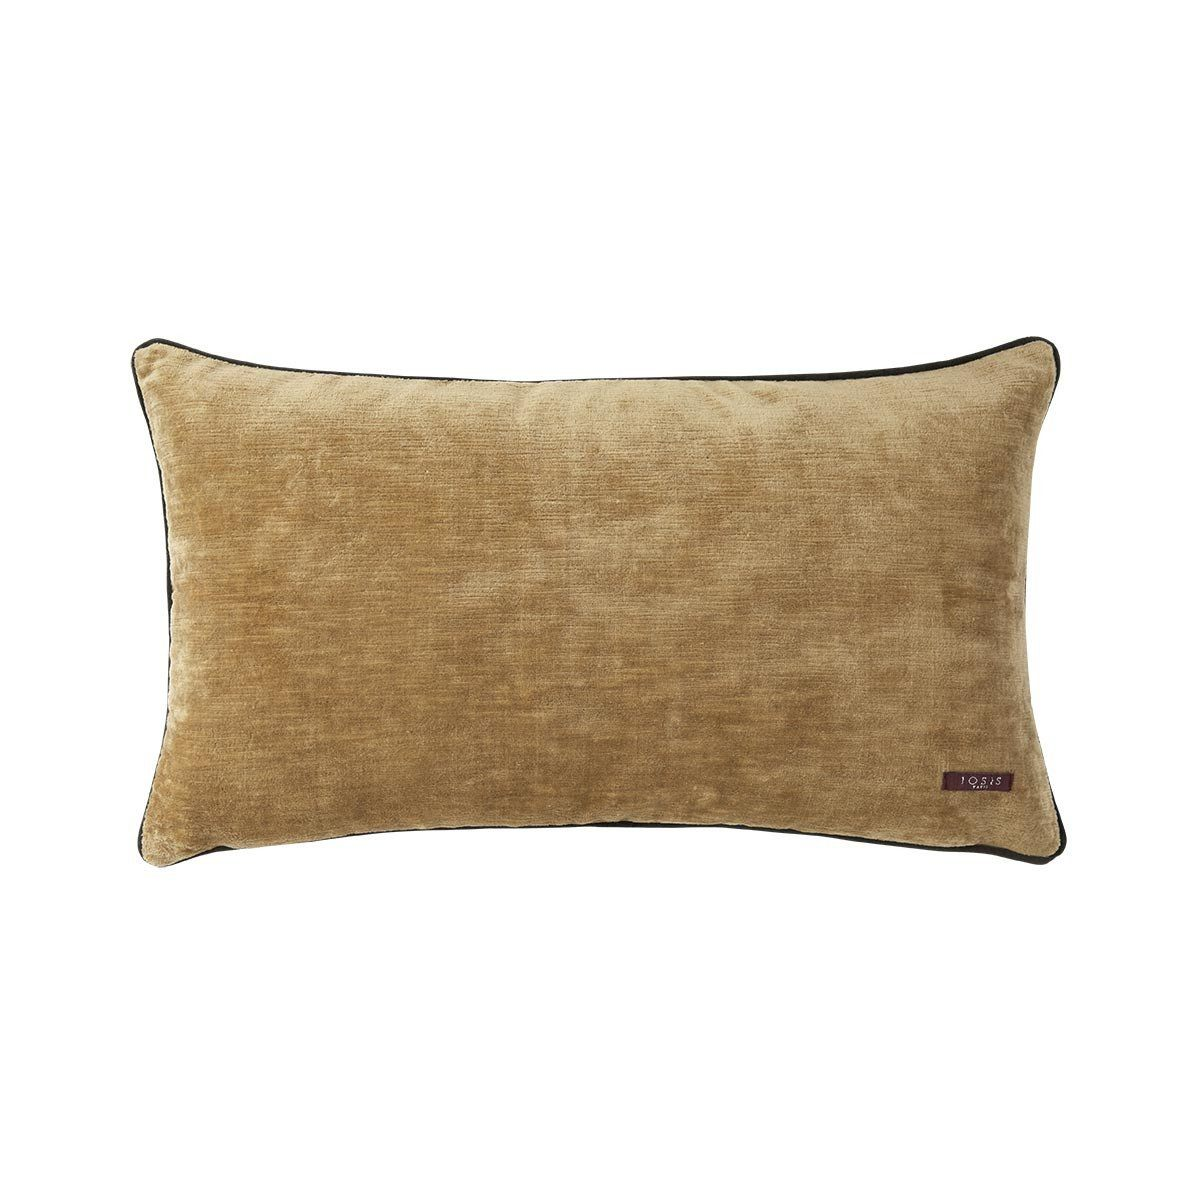 Fig Linens - Boromee Daim Lumbar Pillow by Iosis - Back